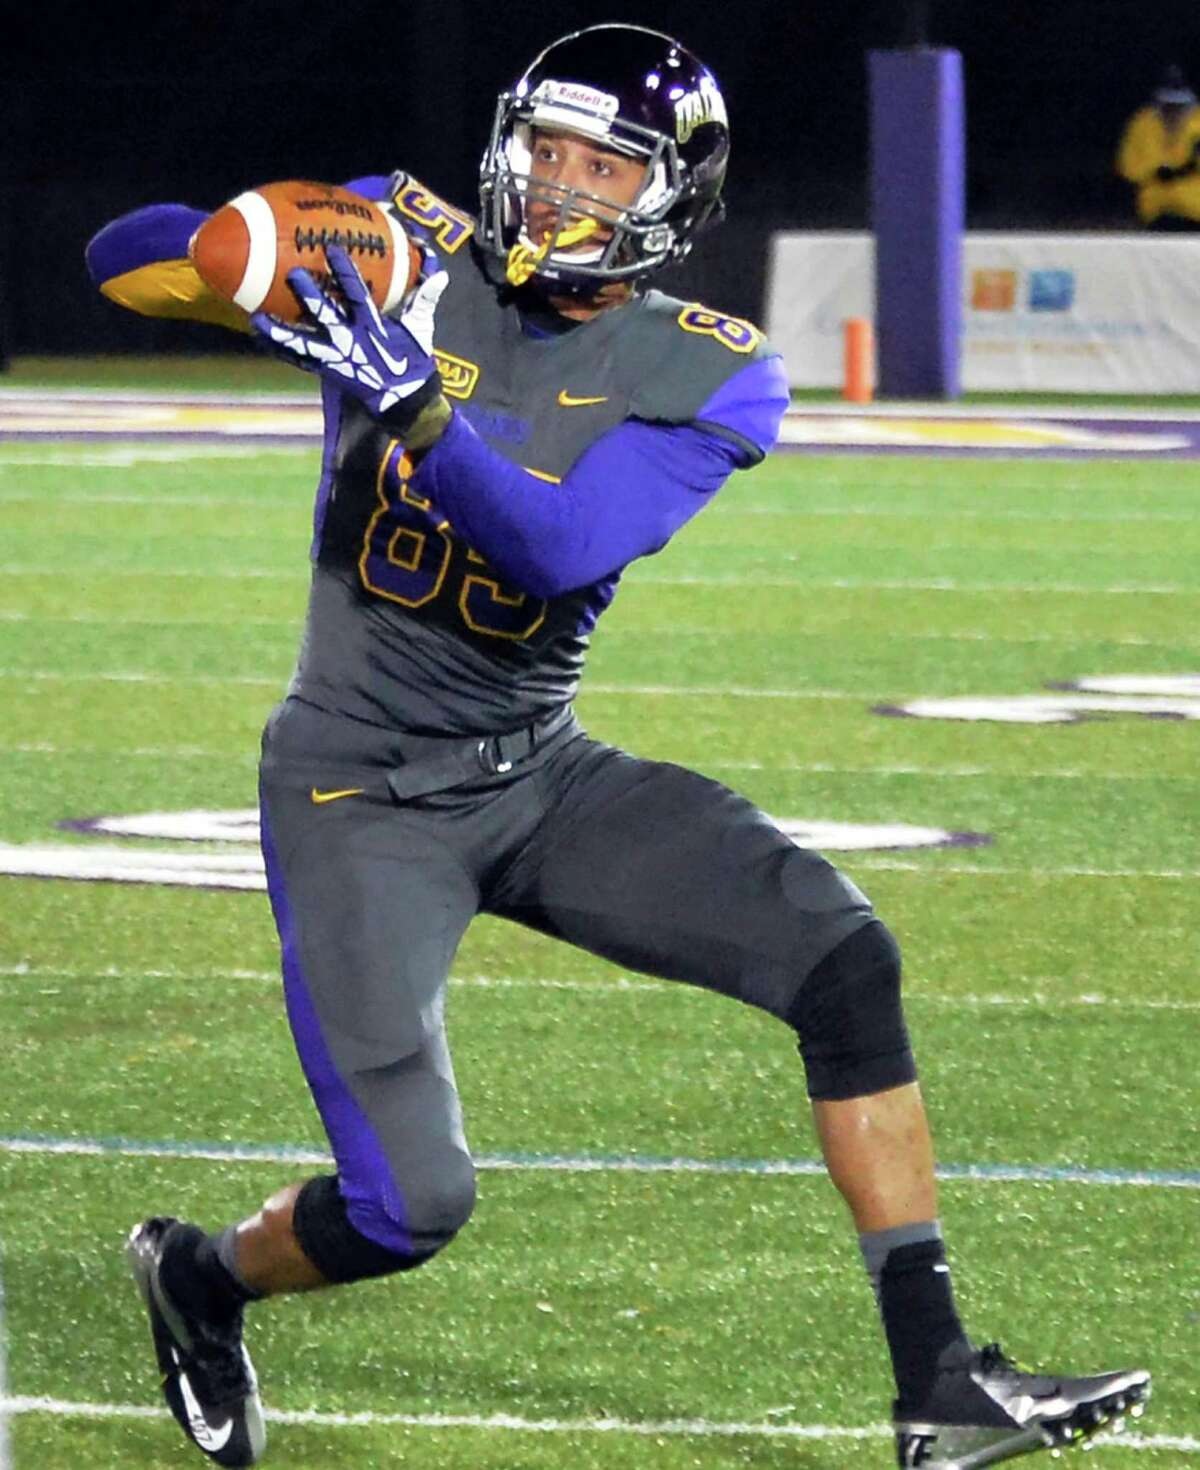 UAlbany wide receiver Brad Harris catches a pass from QB Nevin Sussman during Saturday's game ageinst UNH at Casey Stadium Nov. 14, 2015 in Albany, NY. (John Carl D'Annibale / Times Union)